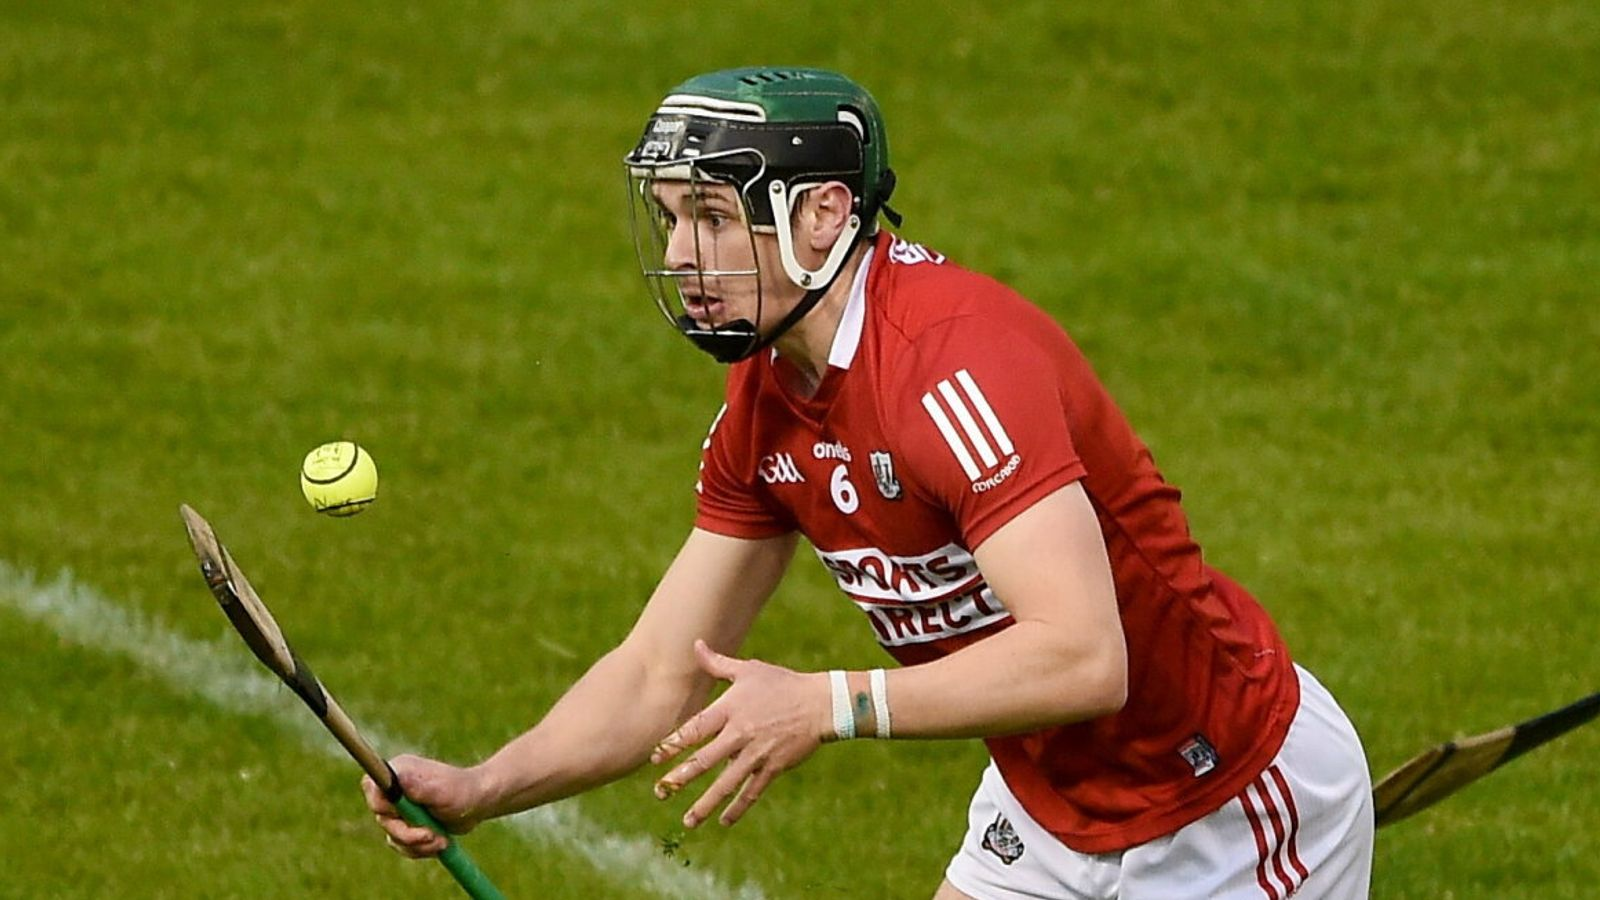 Cork hurling manager Kieran Kingston says you could play 'class act' Mark Coleman anywhere on the field